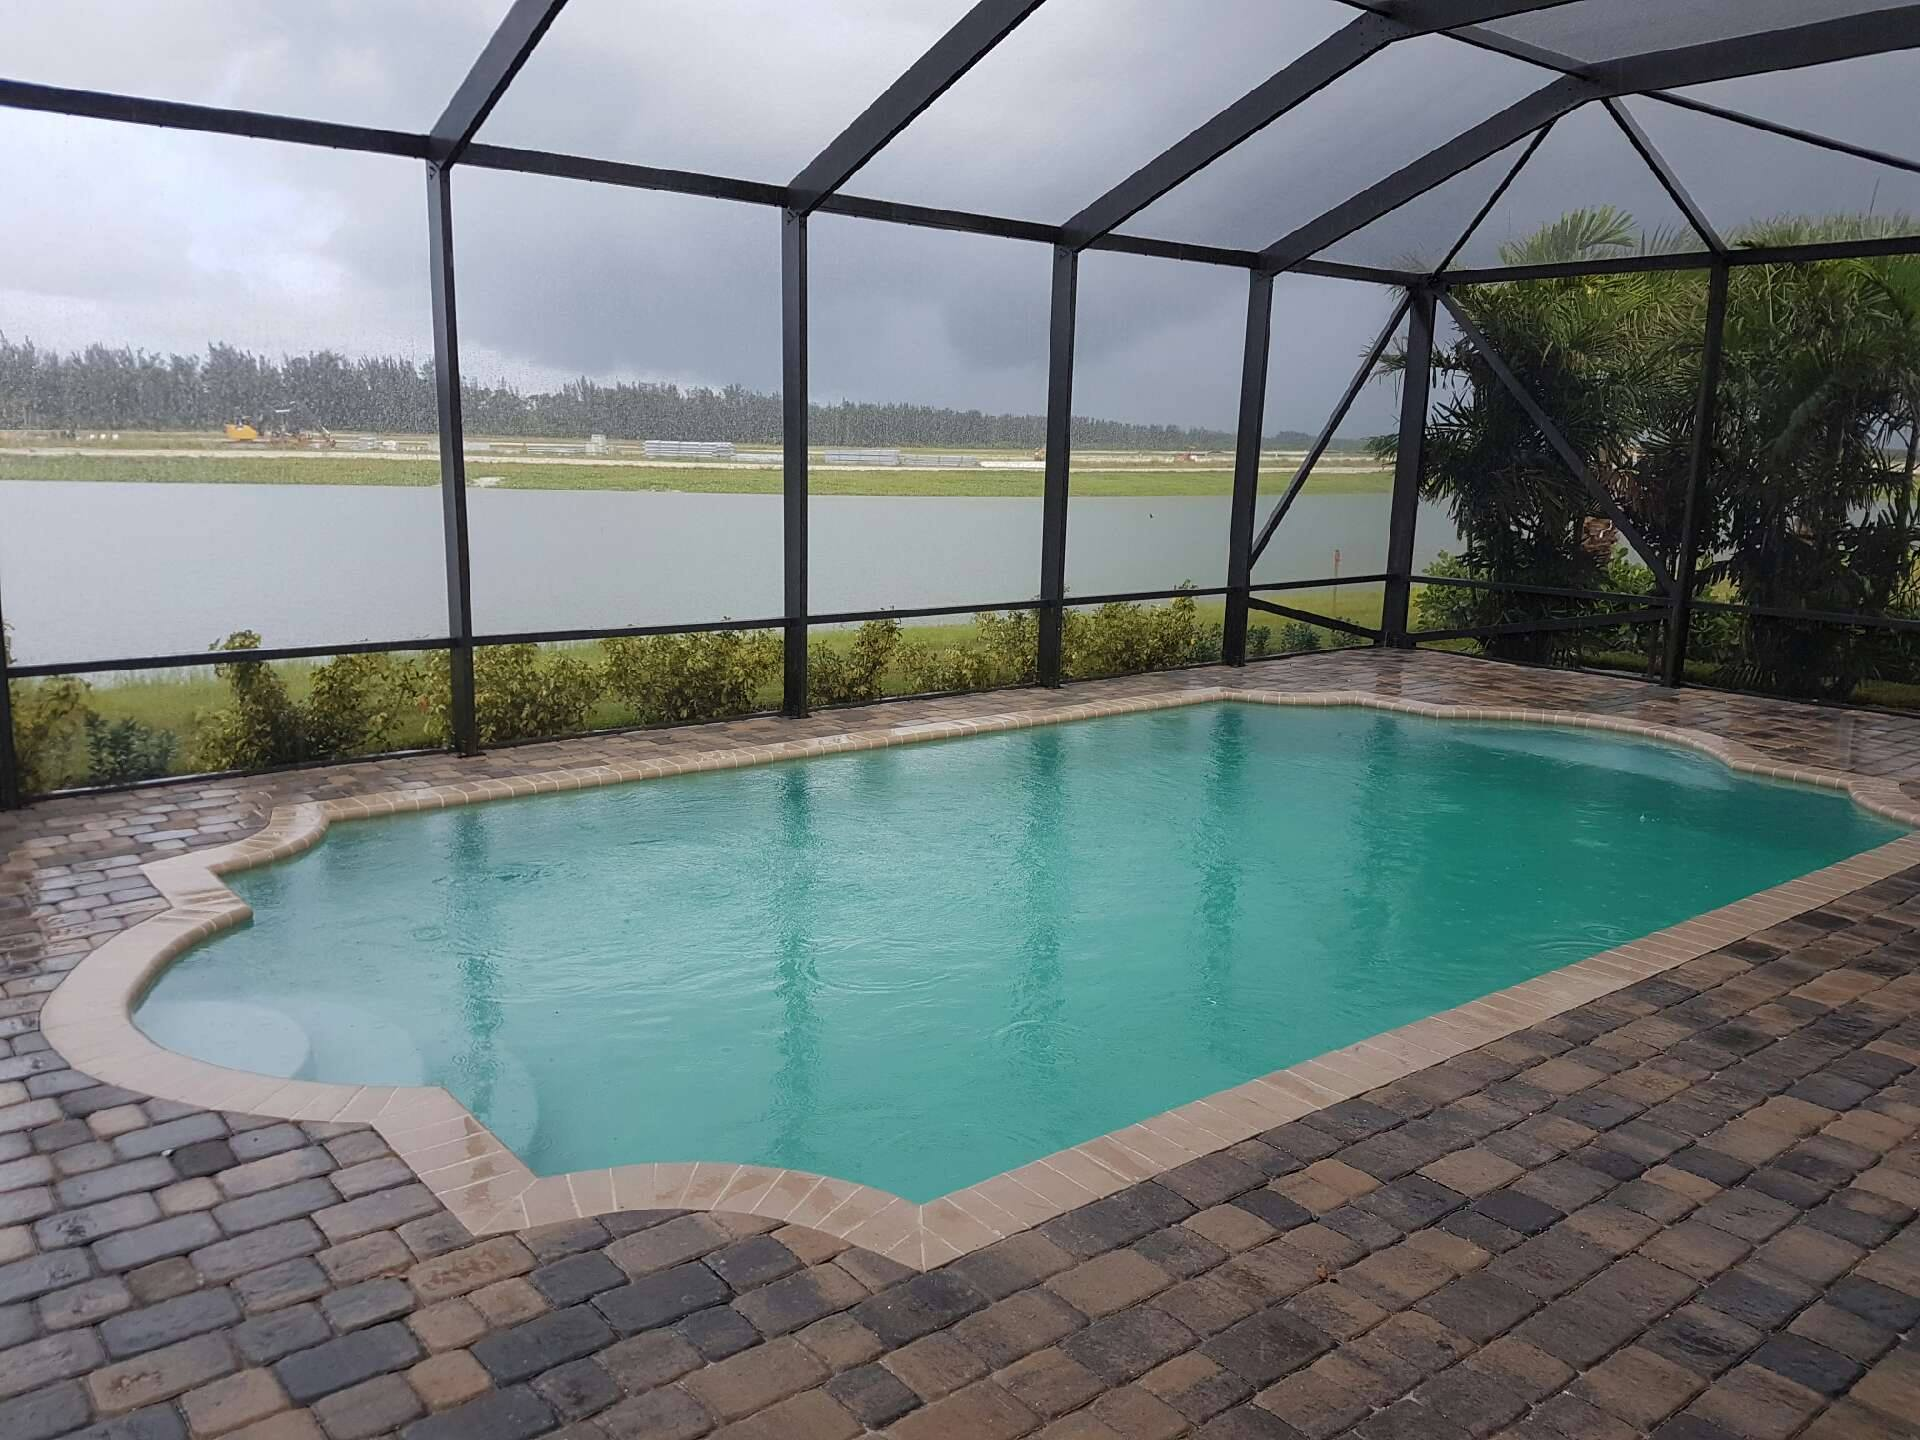 Fountain Blue Pool Services - West Palm Beach Webpagedepot